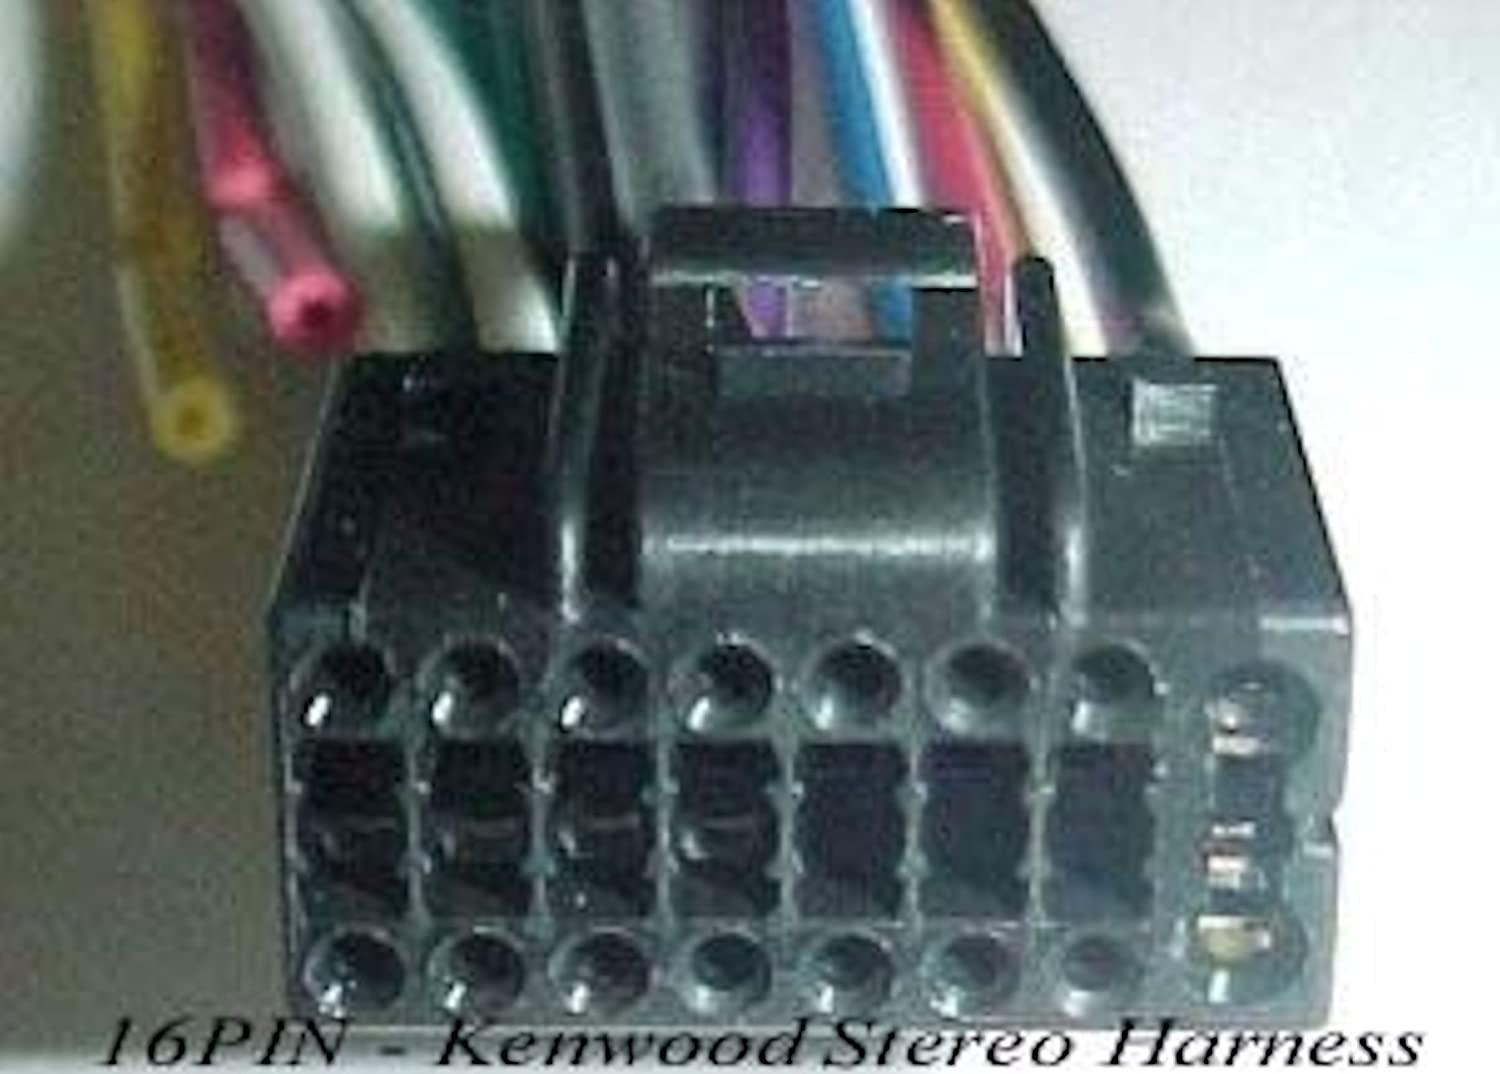 71x3HAisXfL._SL1500_ amazon com kenwood wire harness kdc 358u kdc bt558u kdc bt710hd kenwood kdc bt310u wiring diagram at readyjetset.co